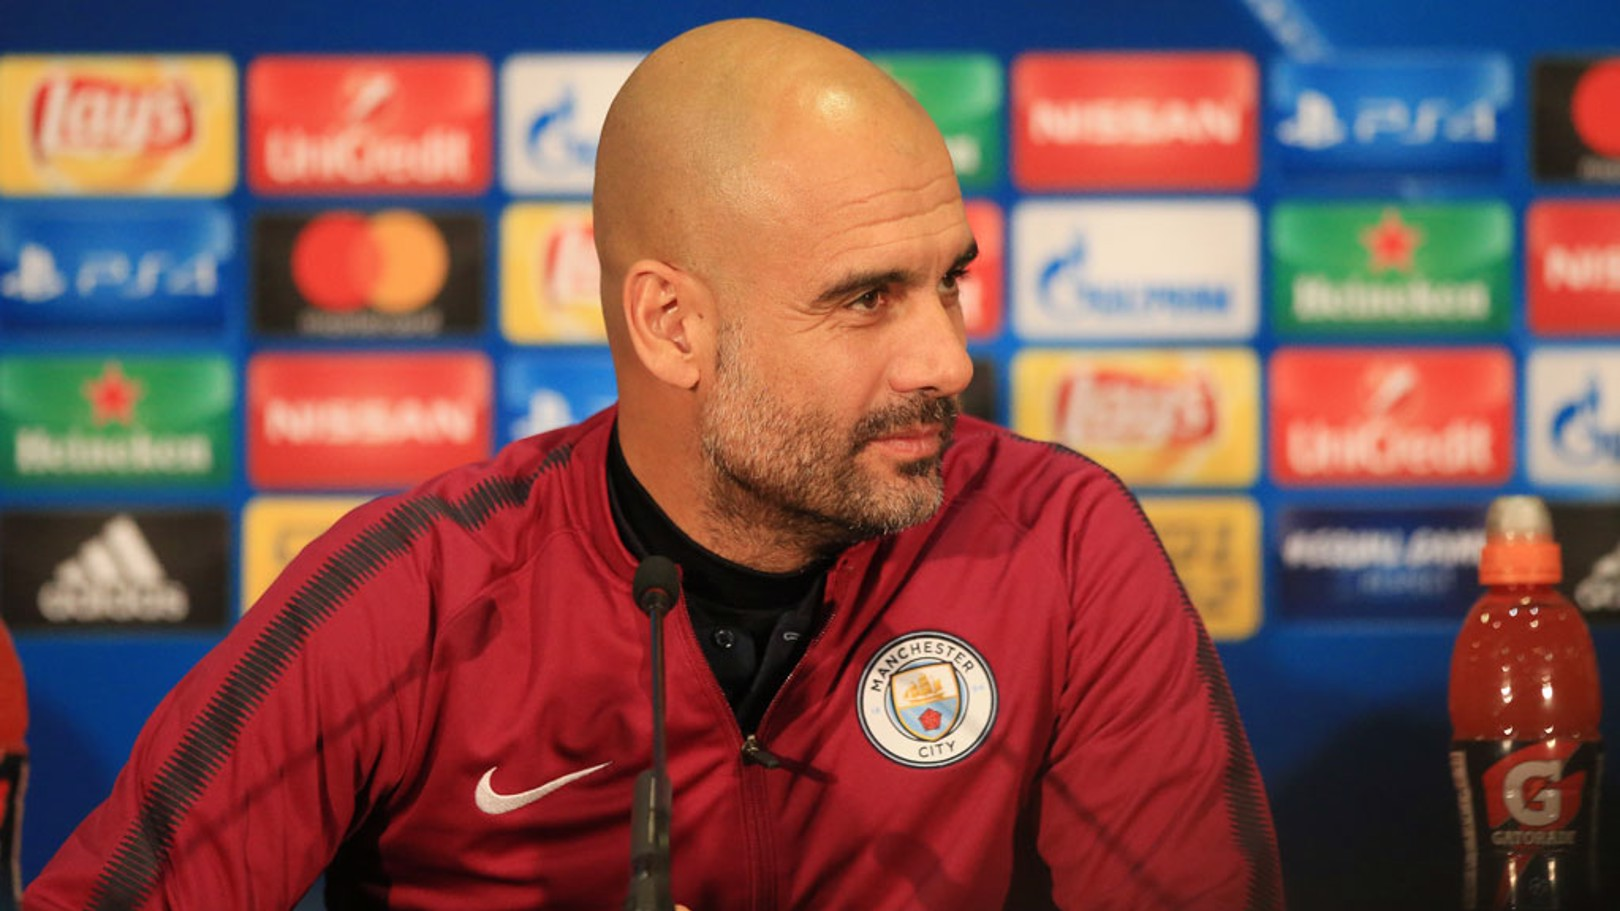 TEAM NEWS: Pep Guardiola provided an updated ahead of Shakhtar Donetsk.